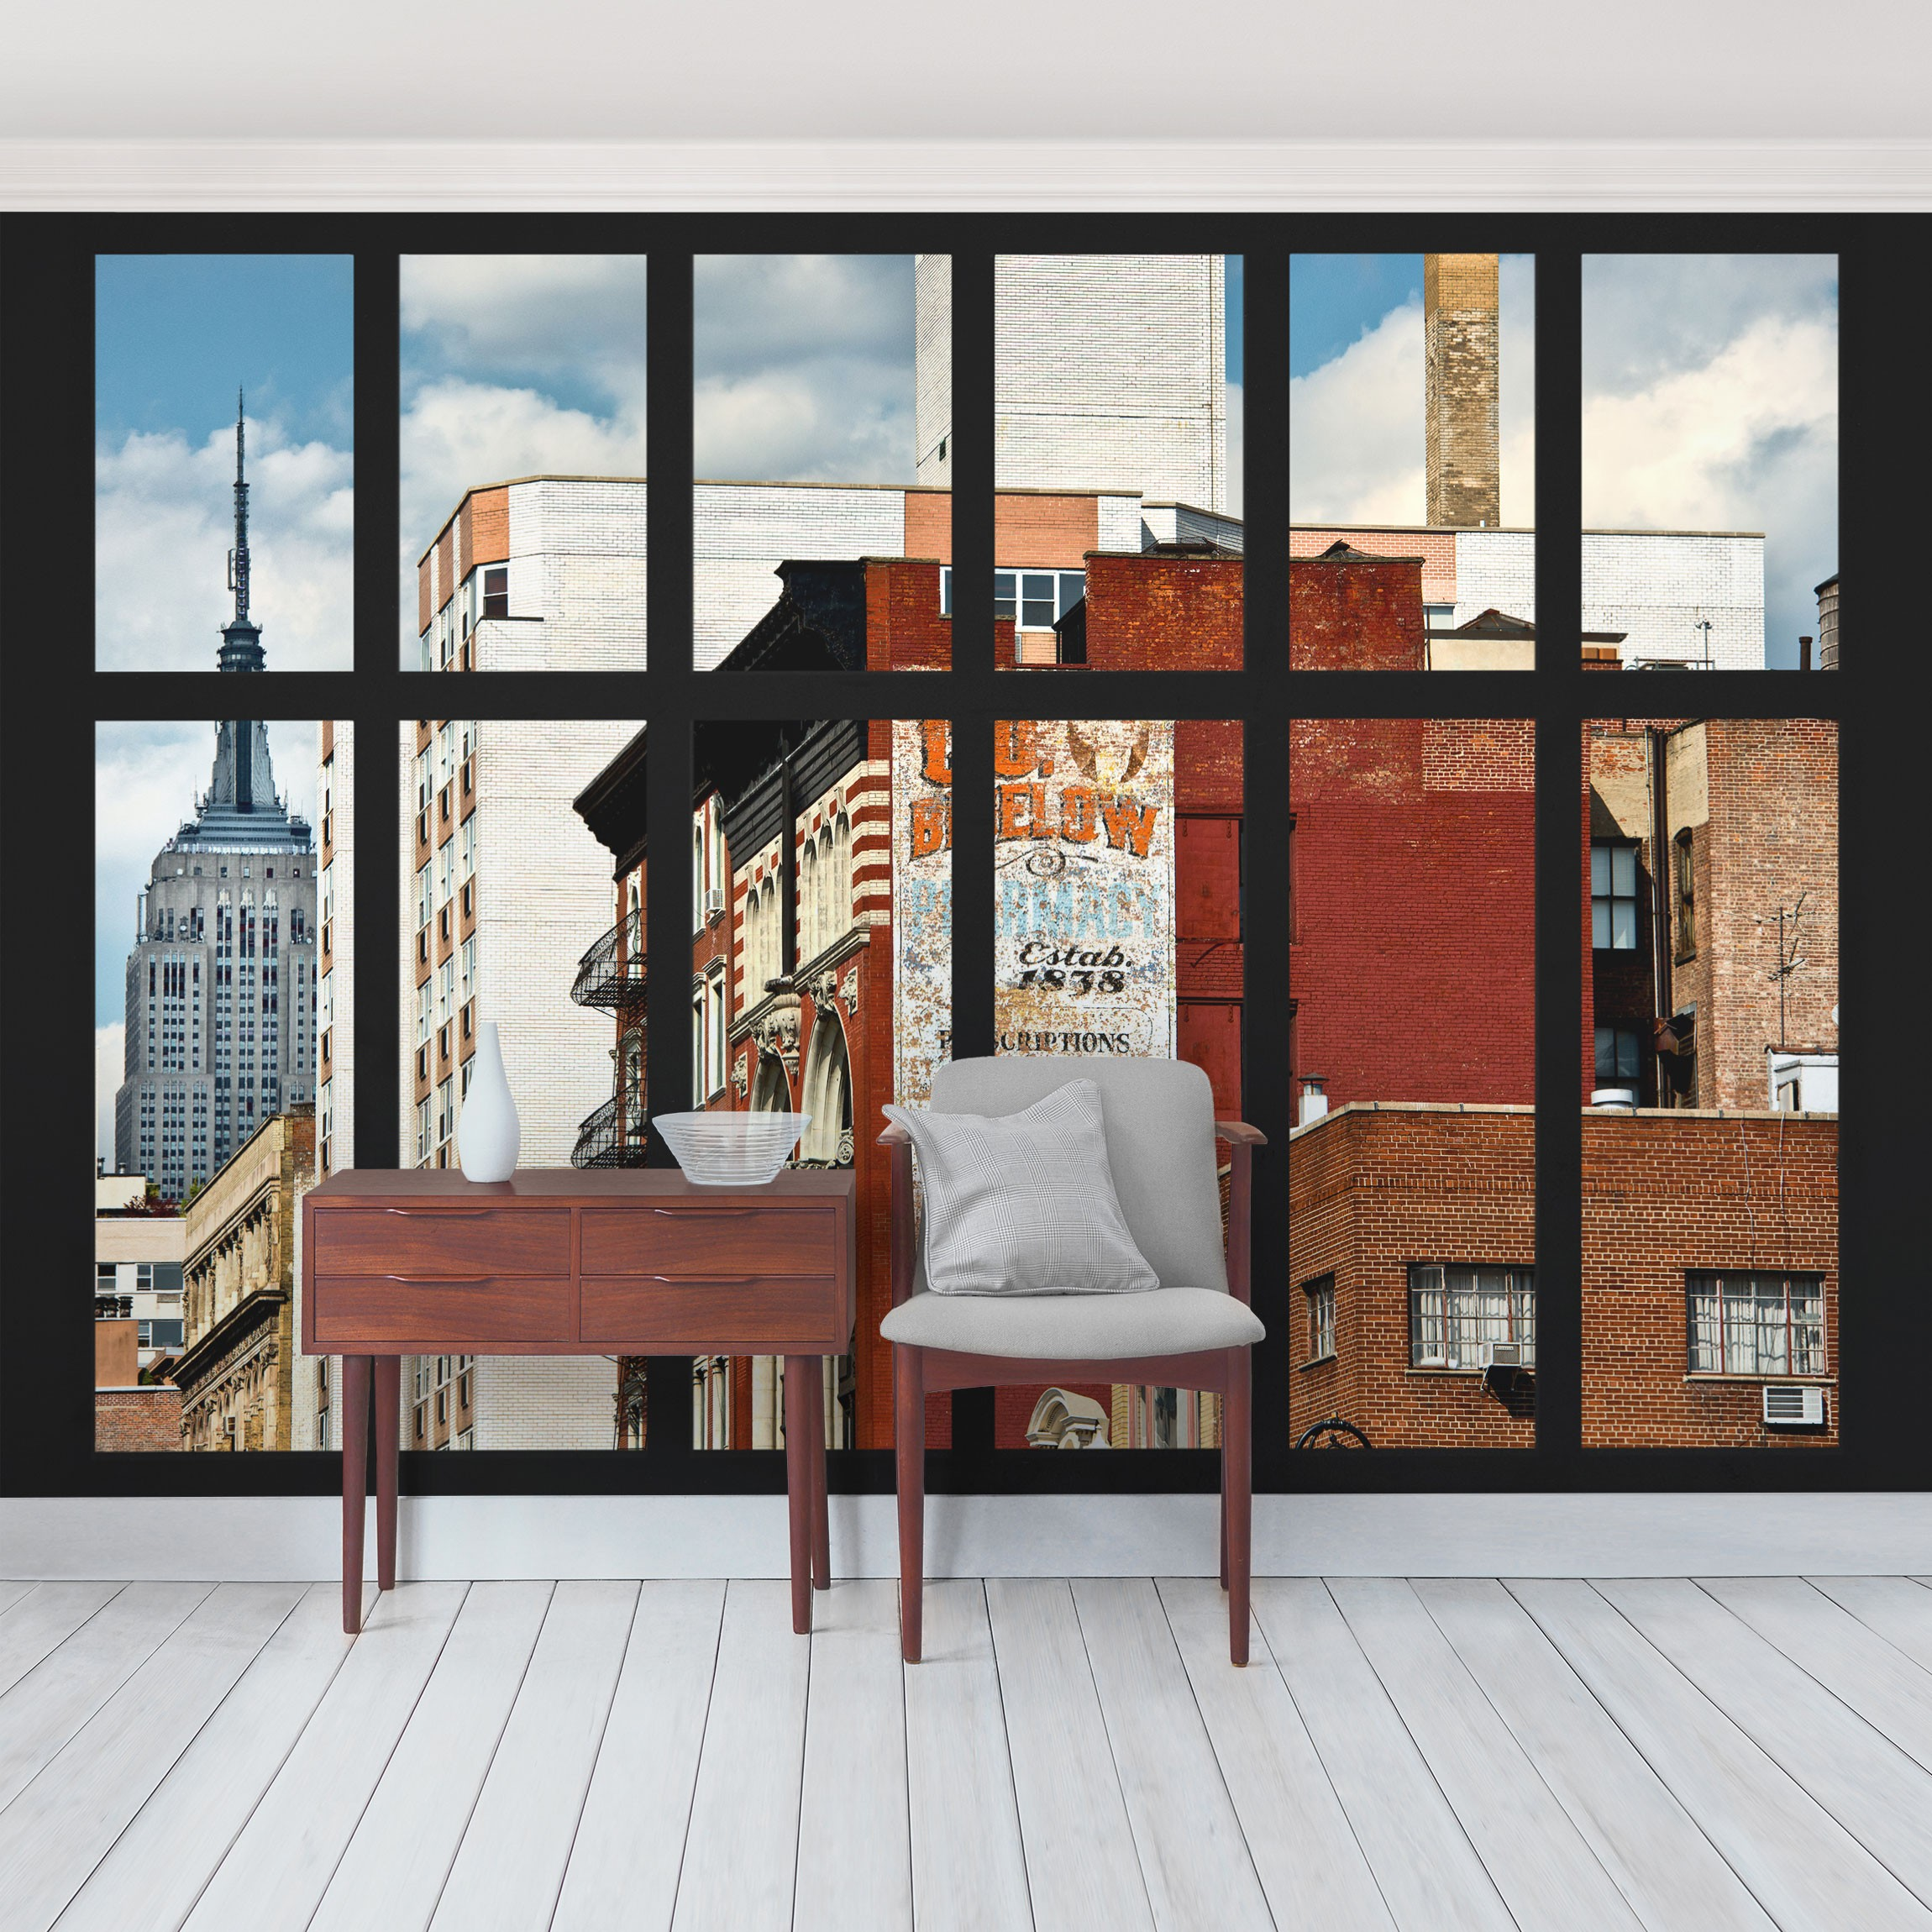 new york fototapete selbstklebend fensterblick auf new york geb ude. Black Bedroom Furniture Sets. Home Design Ideas